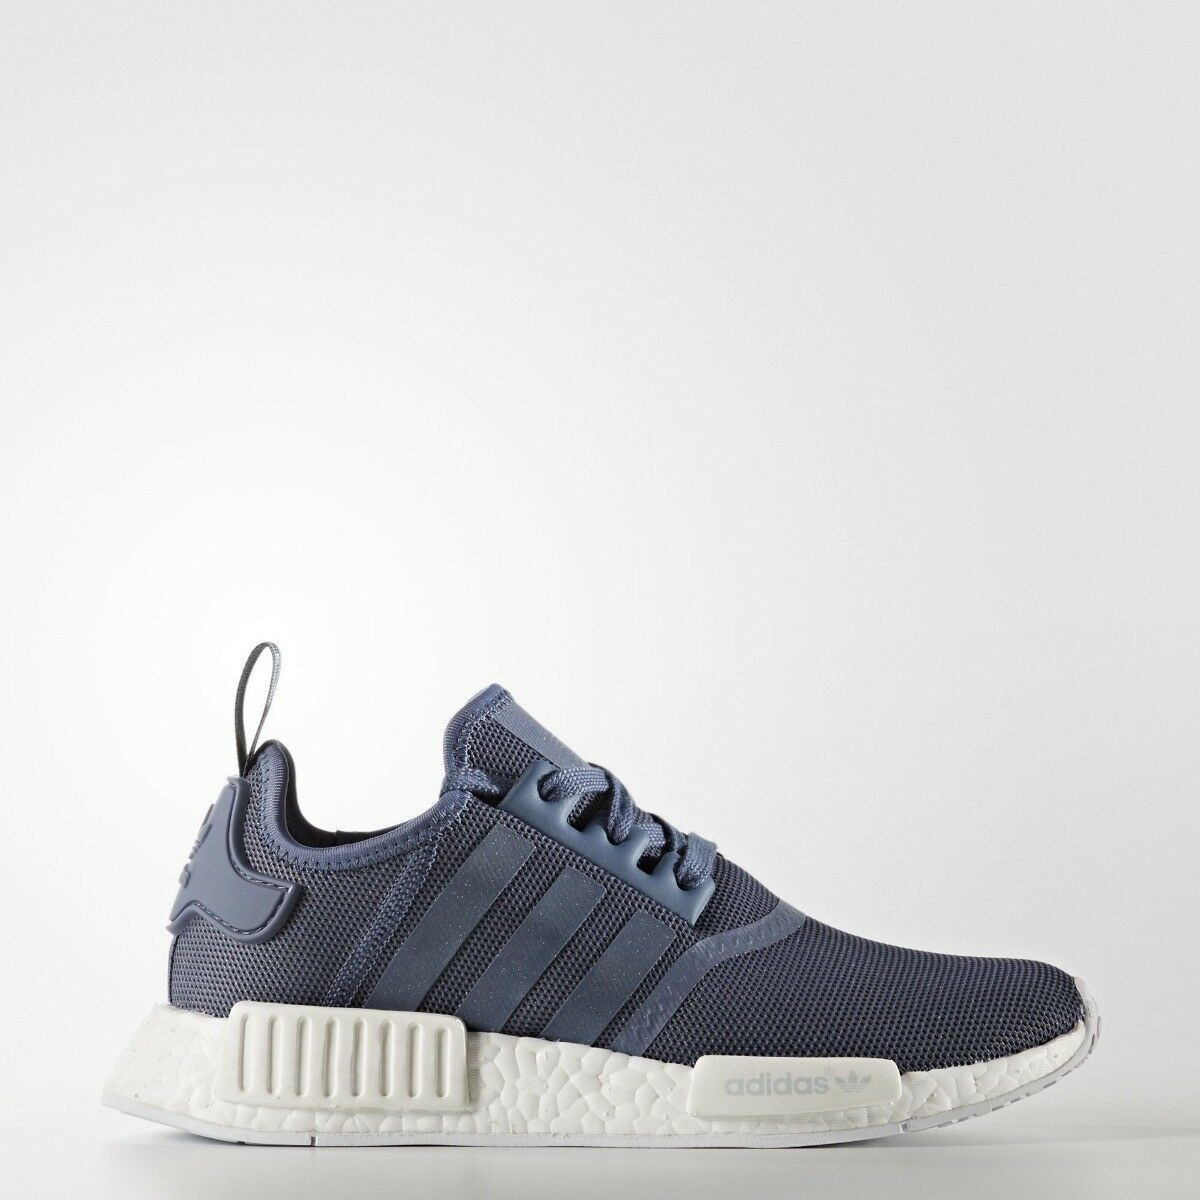 Adidas NMD _1 R1 femmes COURIR Chaussures tennis taille 5 TECH encre F16 NEUF